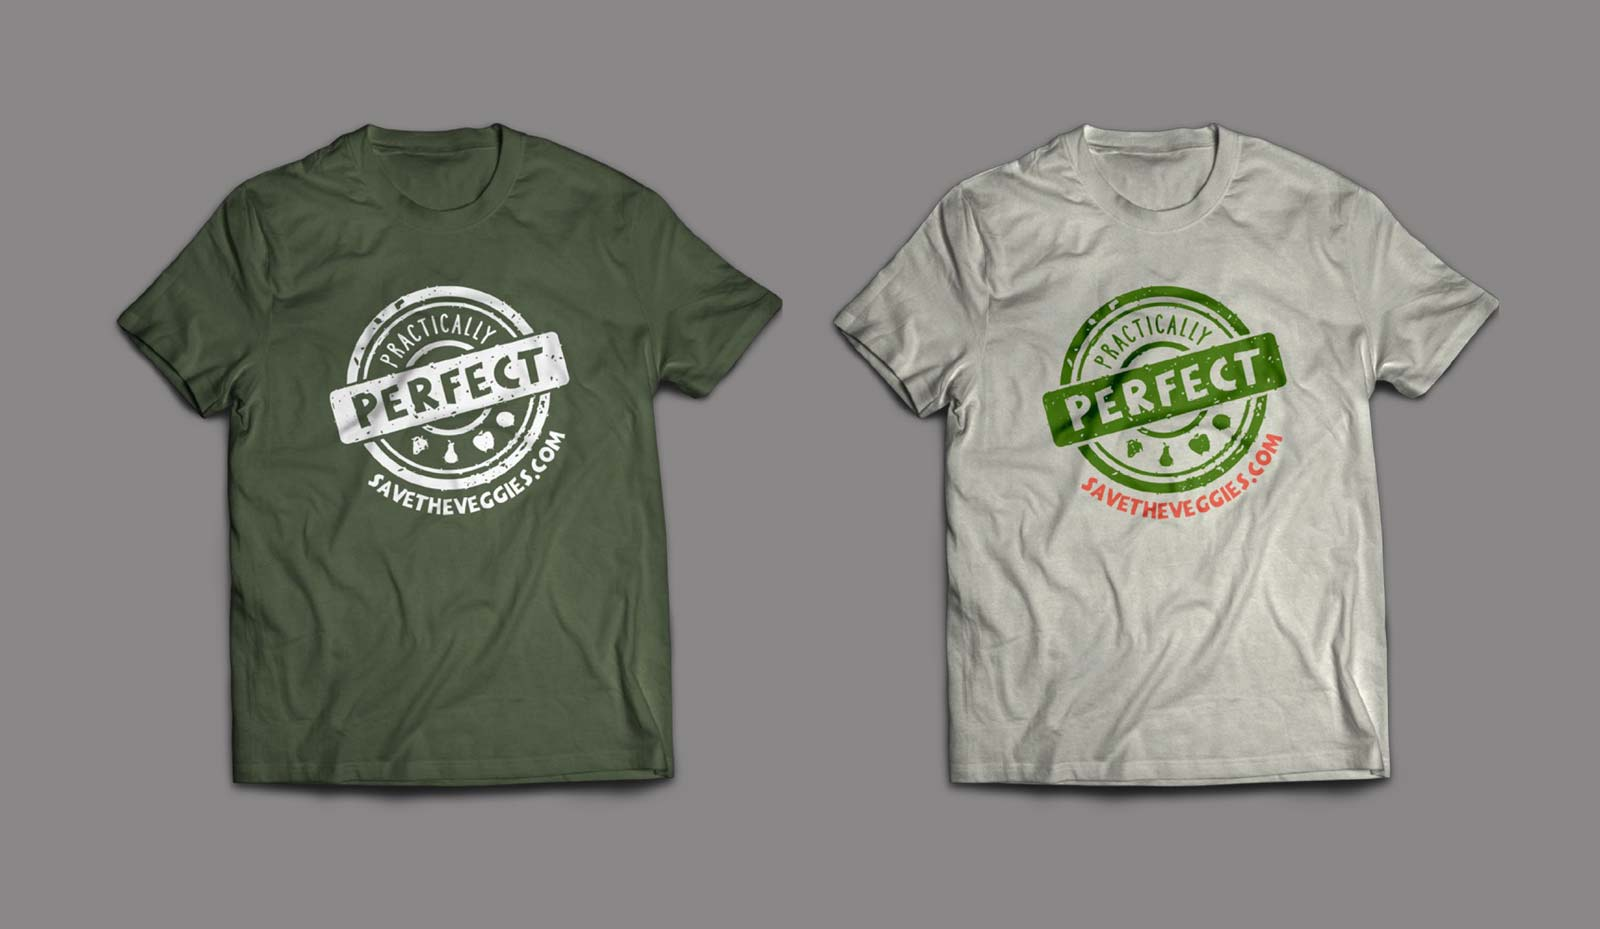 Practically Perfect brand stamp logo centered on a green and gray shirts